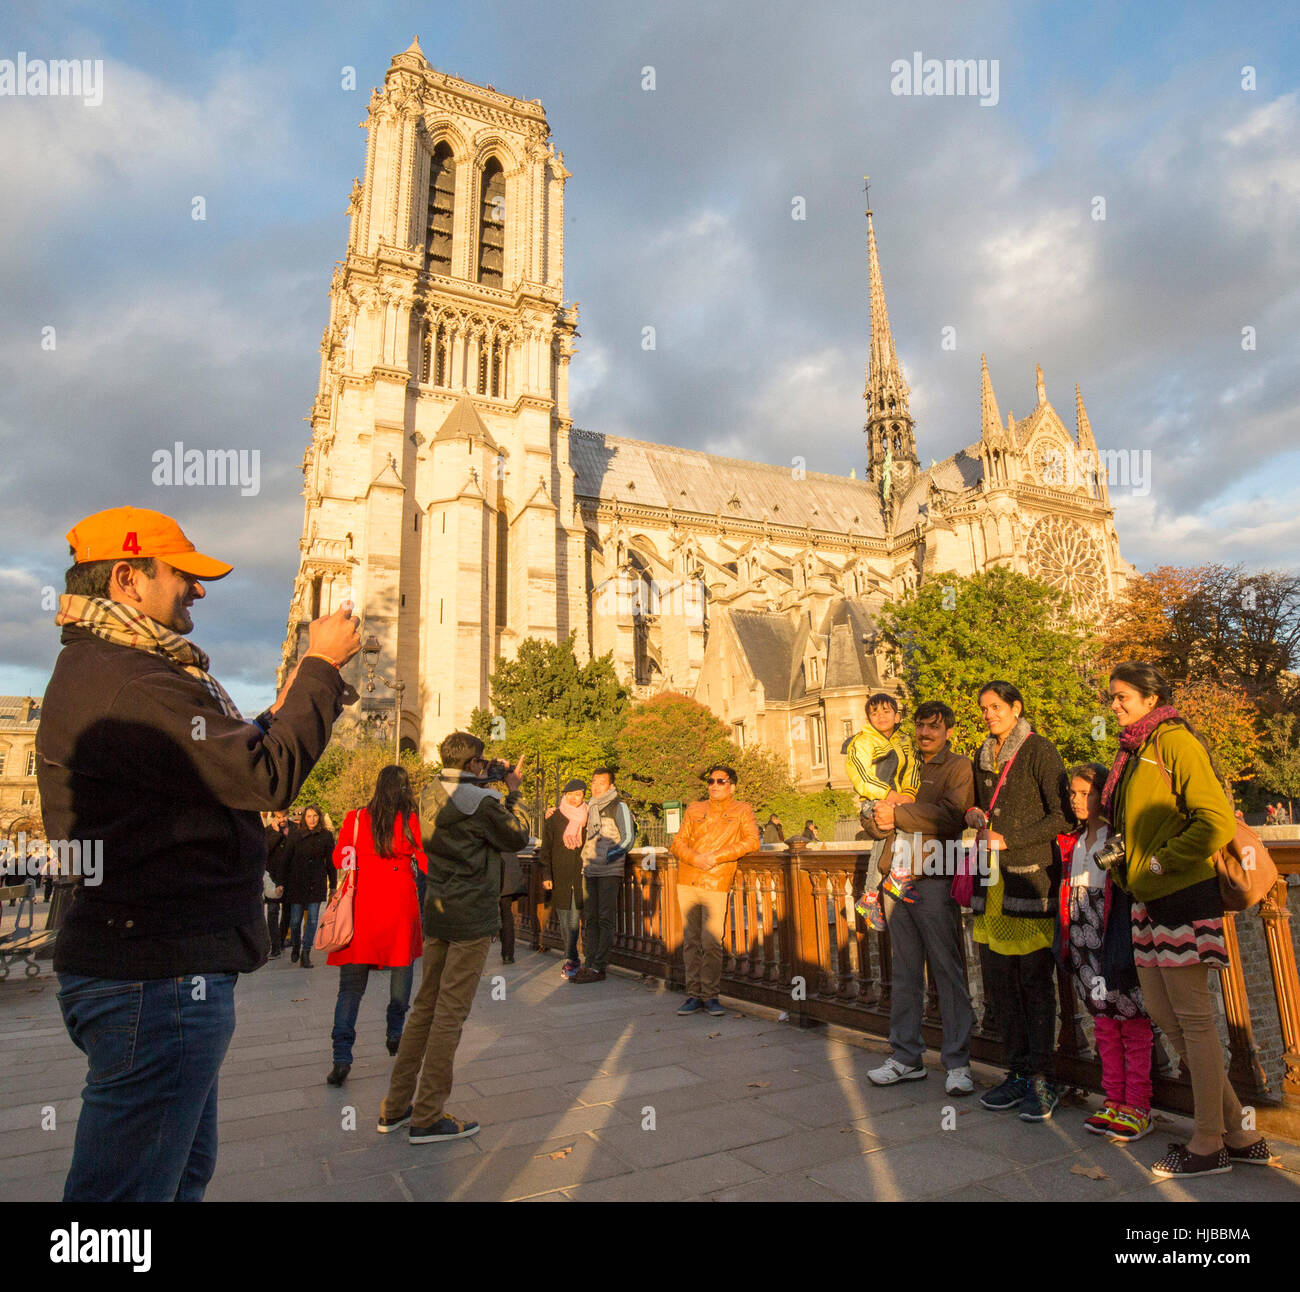 Indian tourists visiting Paris, Notre Dame cathedral, France - Stock Image